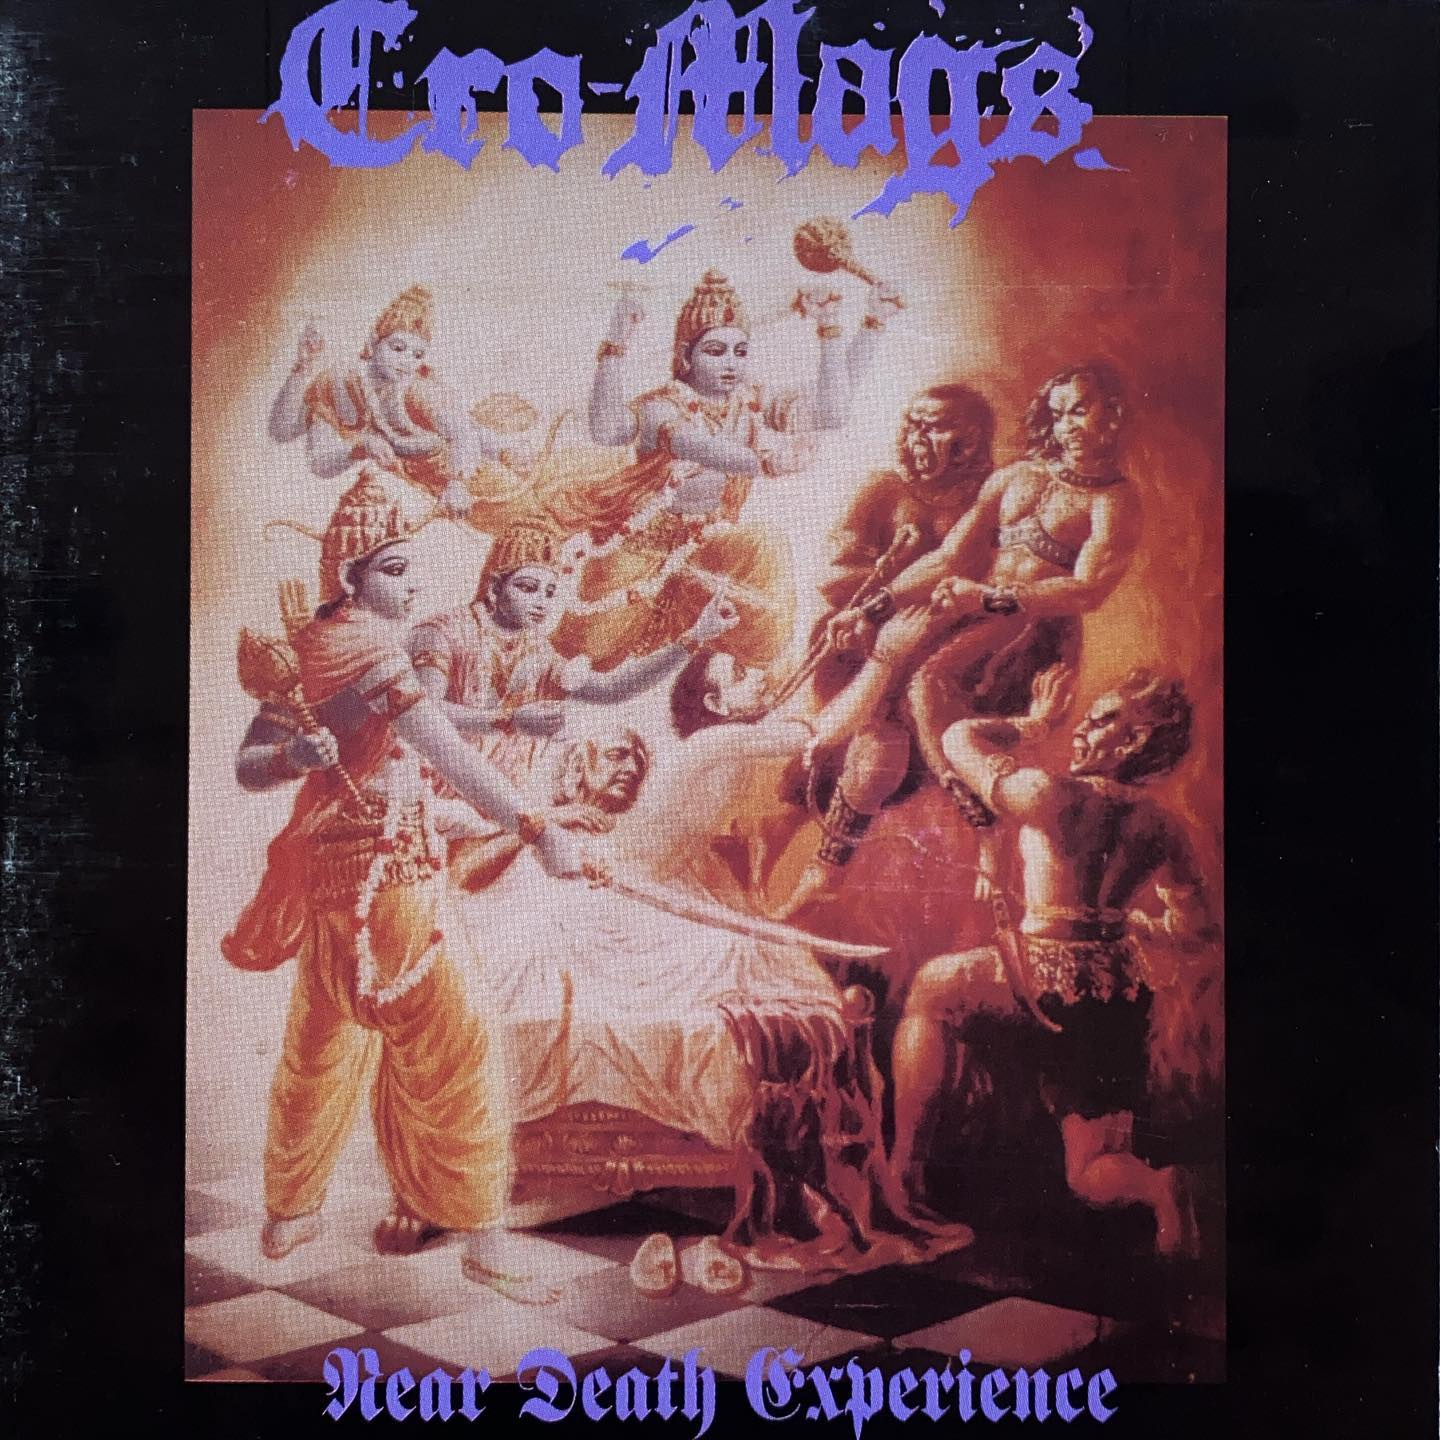 """@realcromags #nowspinning #cd """"Dig in your souls reflect in your hearts'cause death is behind us to tear us apart. Show you no mercy, no mercy at all,the valley of death it echoes its call."""""""